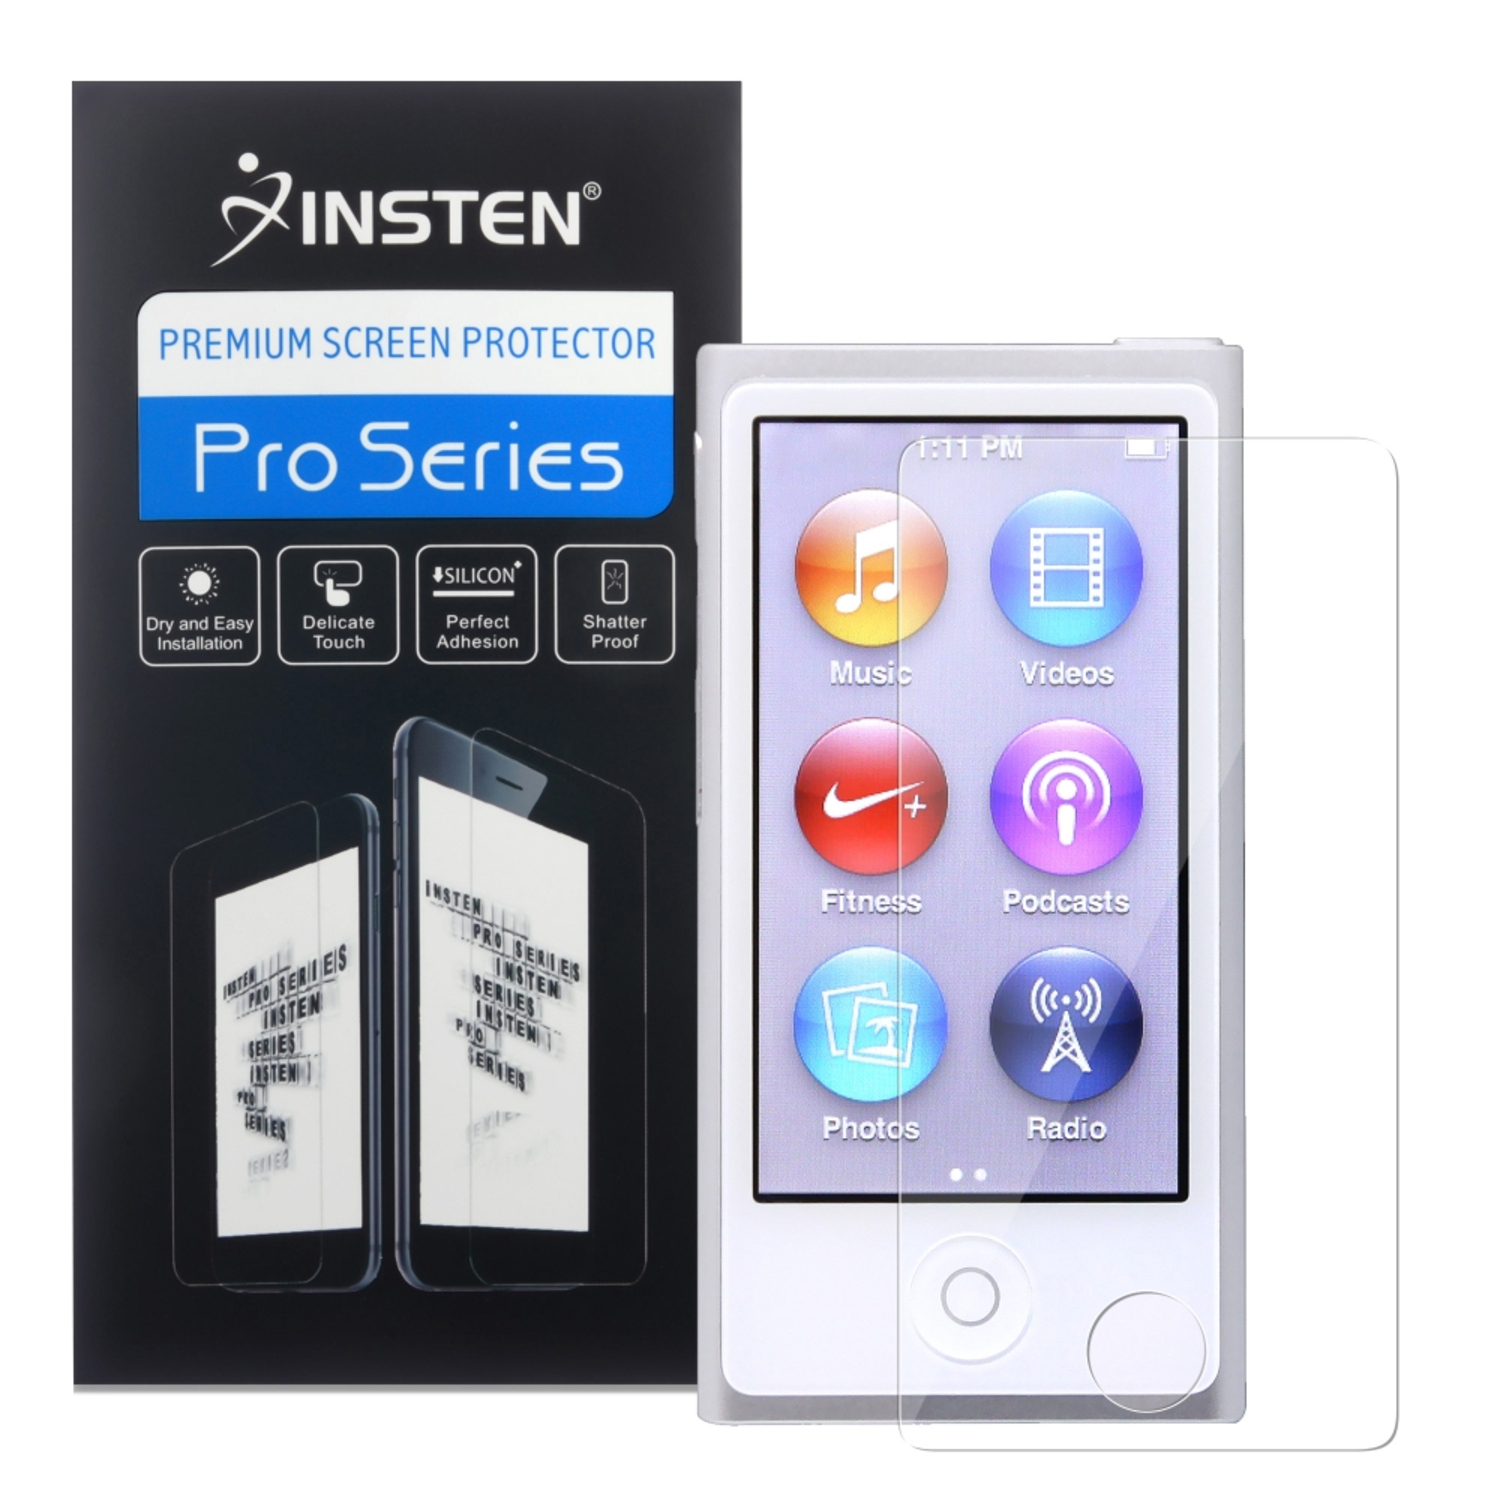 Insten Reusable Screen Protector For Apple iPod nano 7 7th Generation